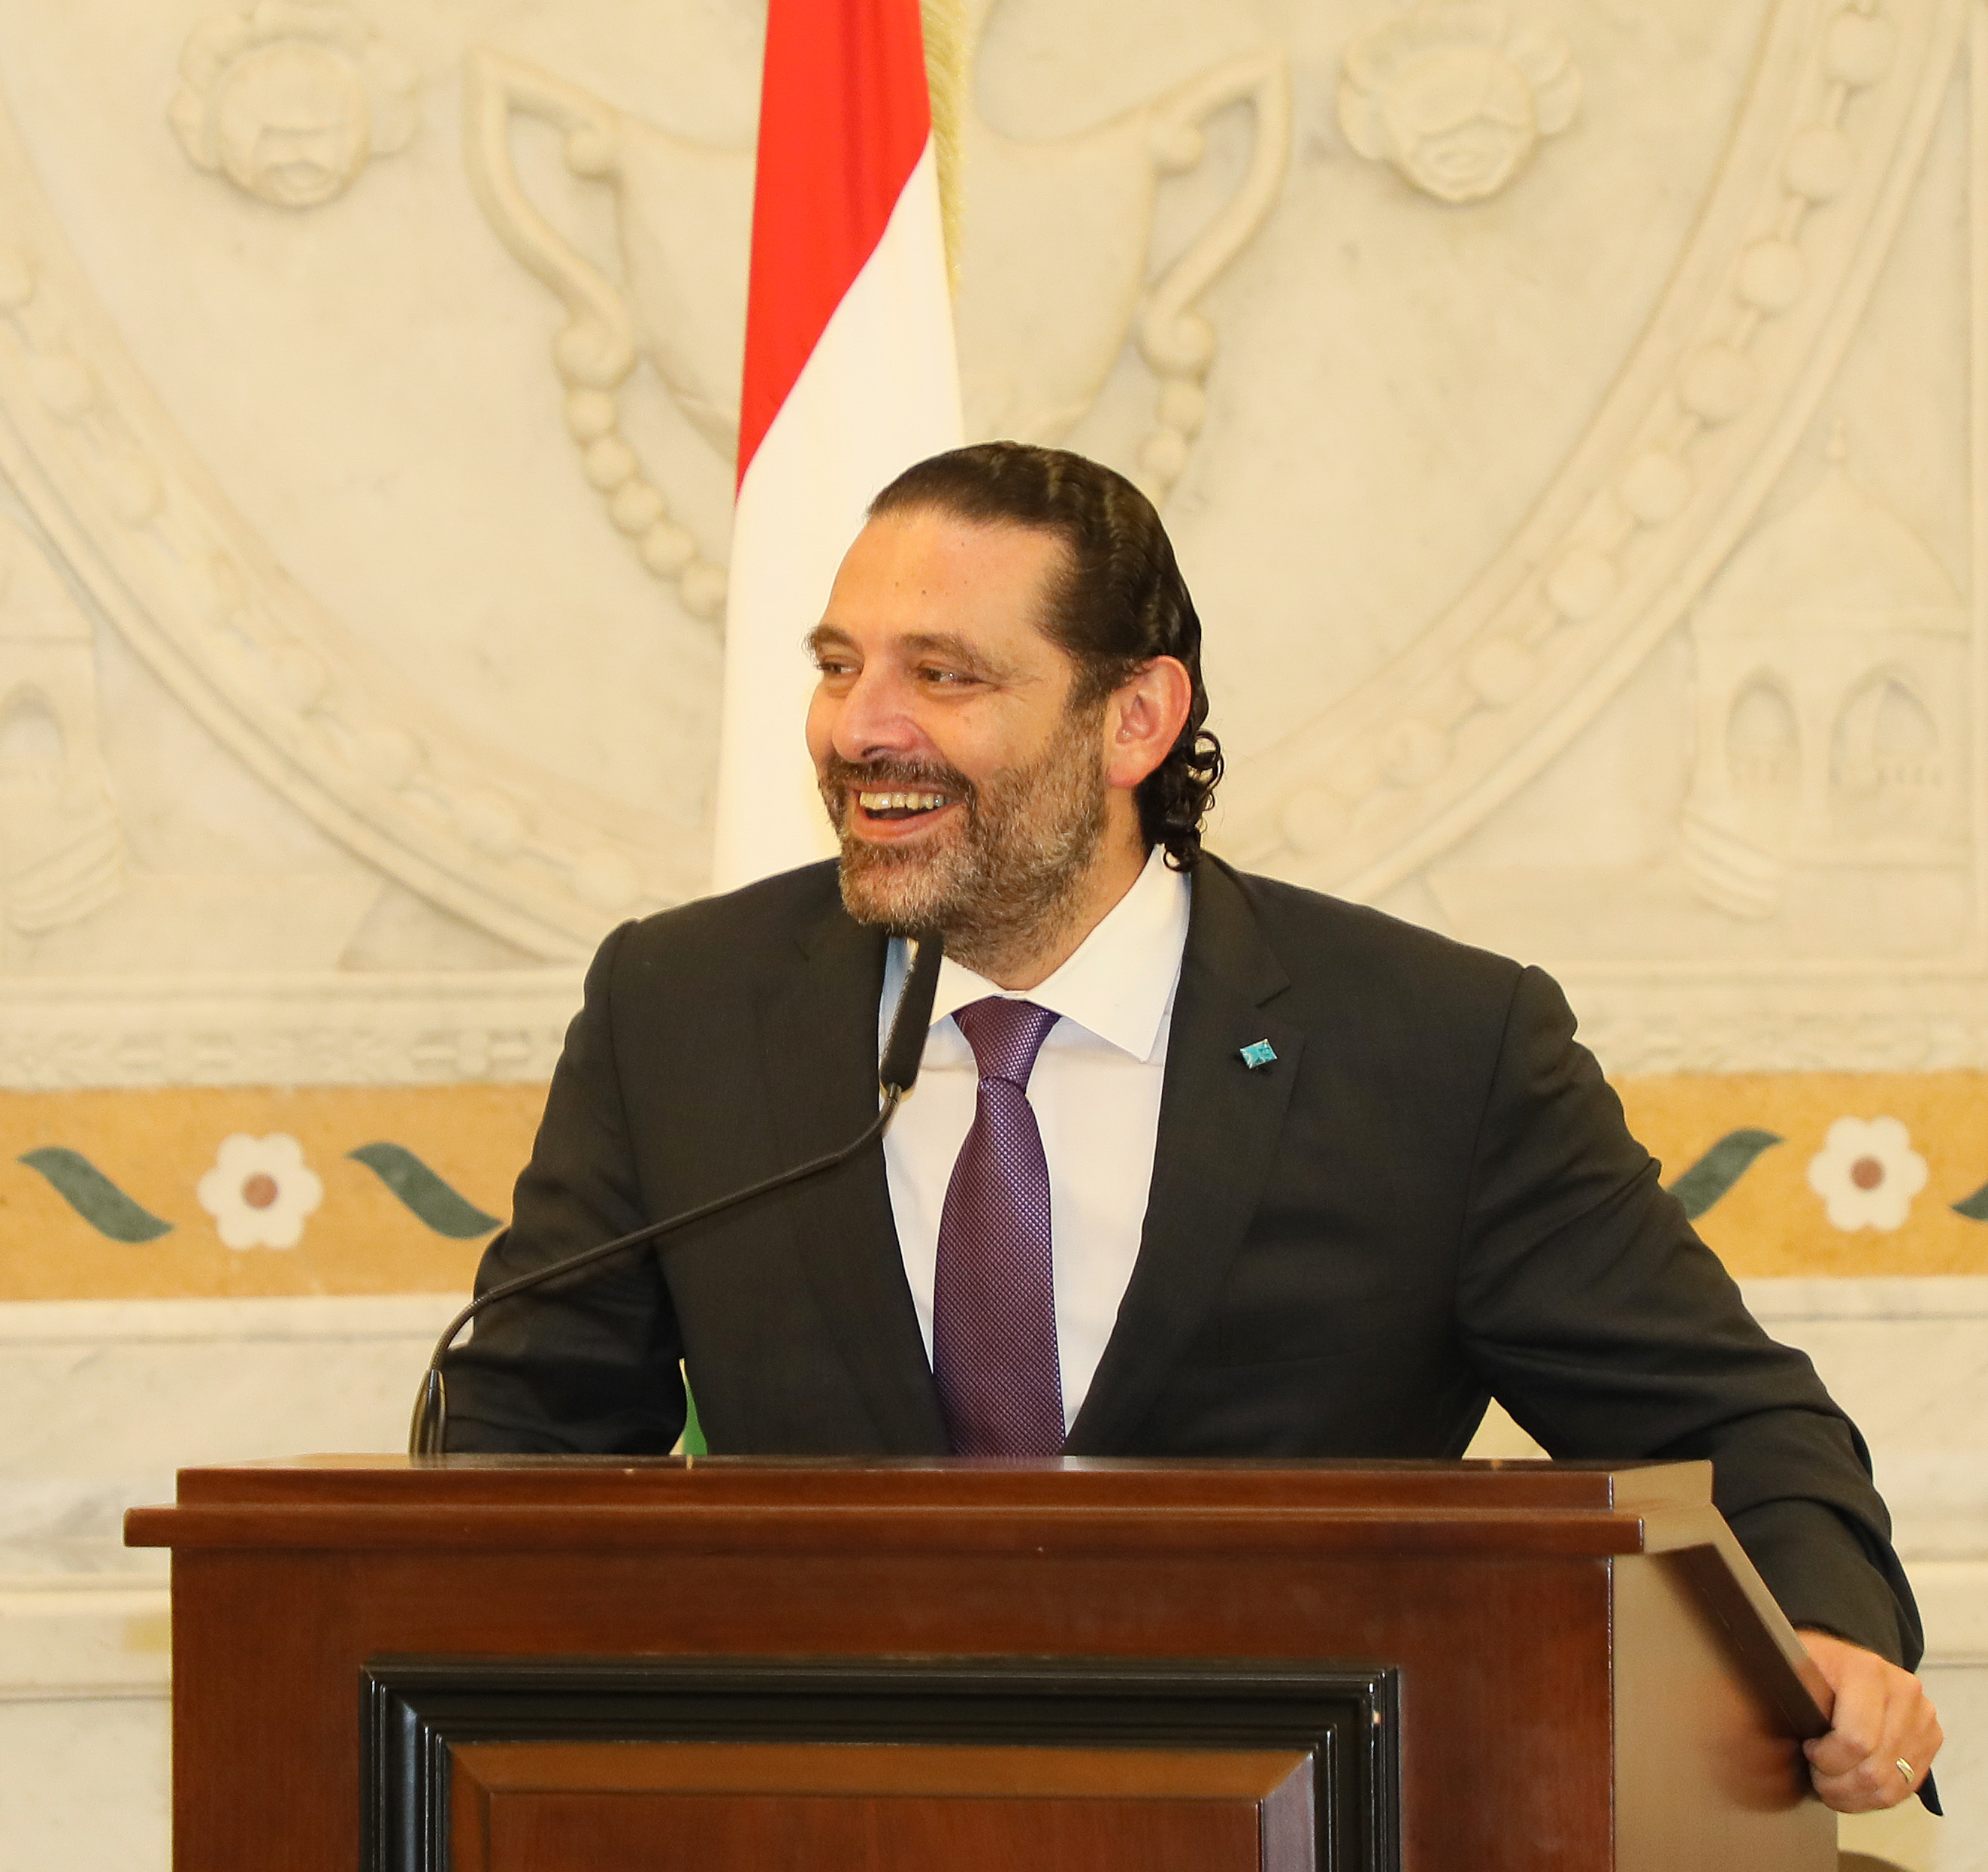 Pr Minister Saad Hariri Honors a Delegation from Lebanese Students 4